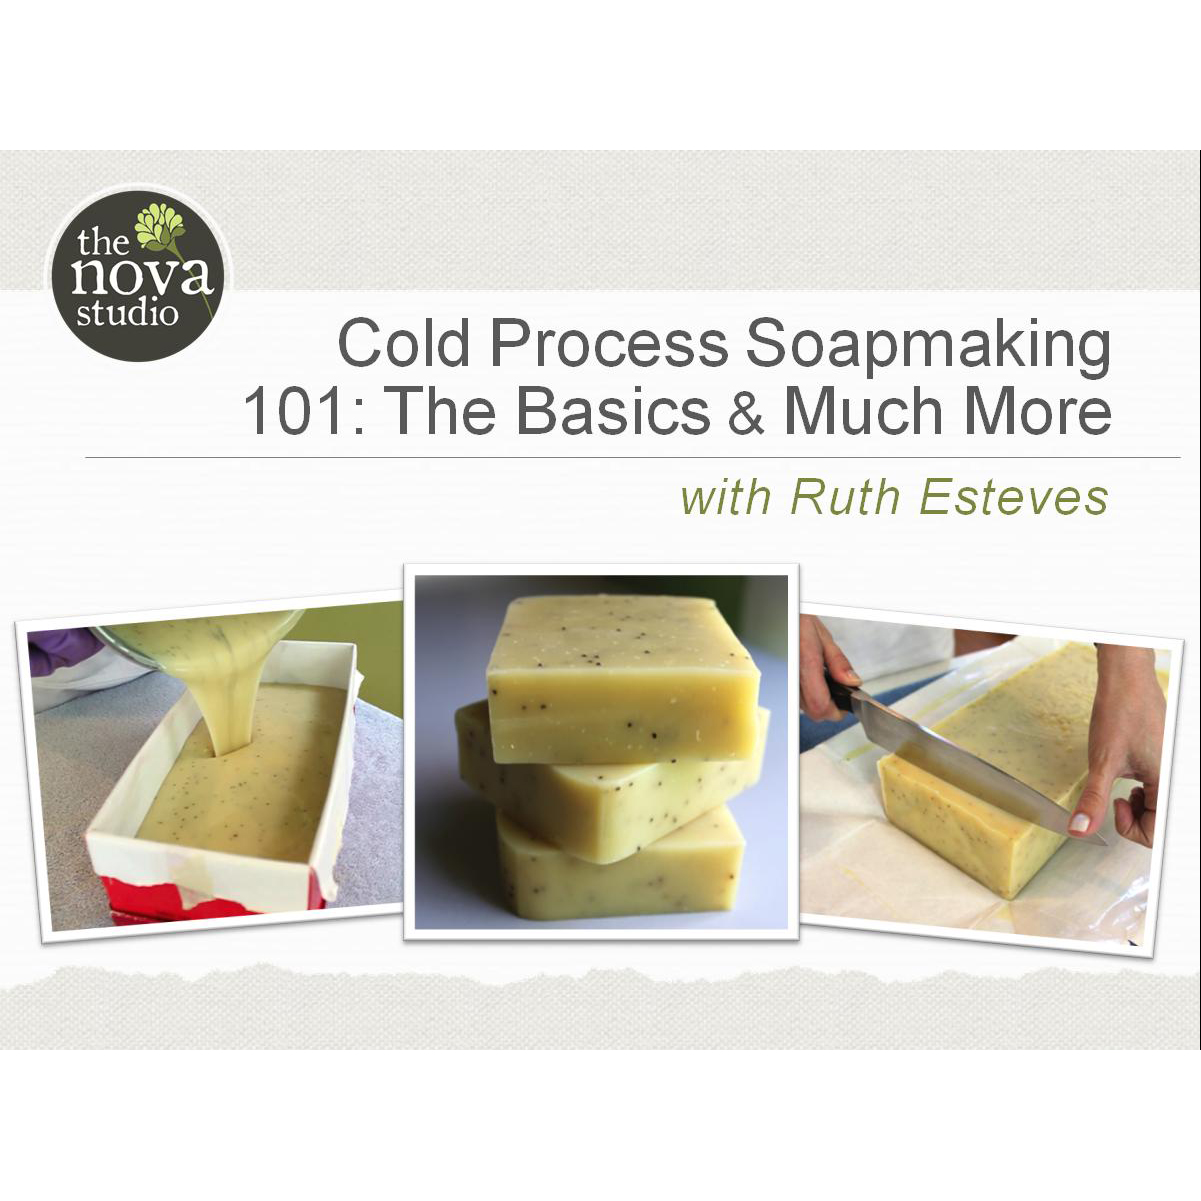 Learn To Make Soap Using The Cold Process Method